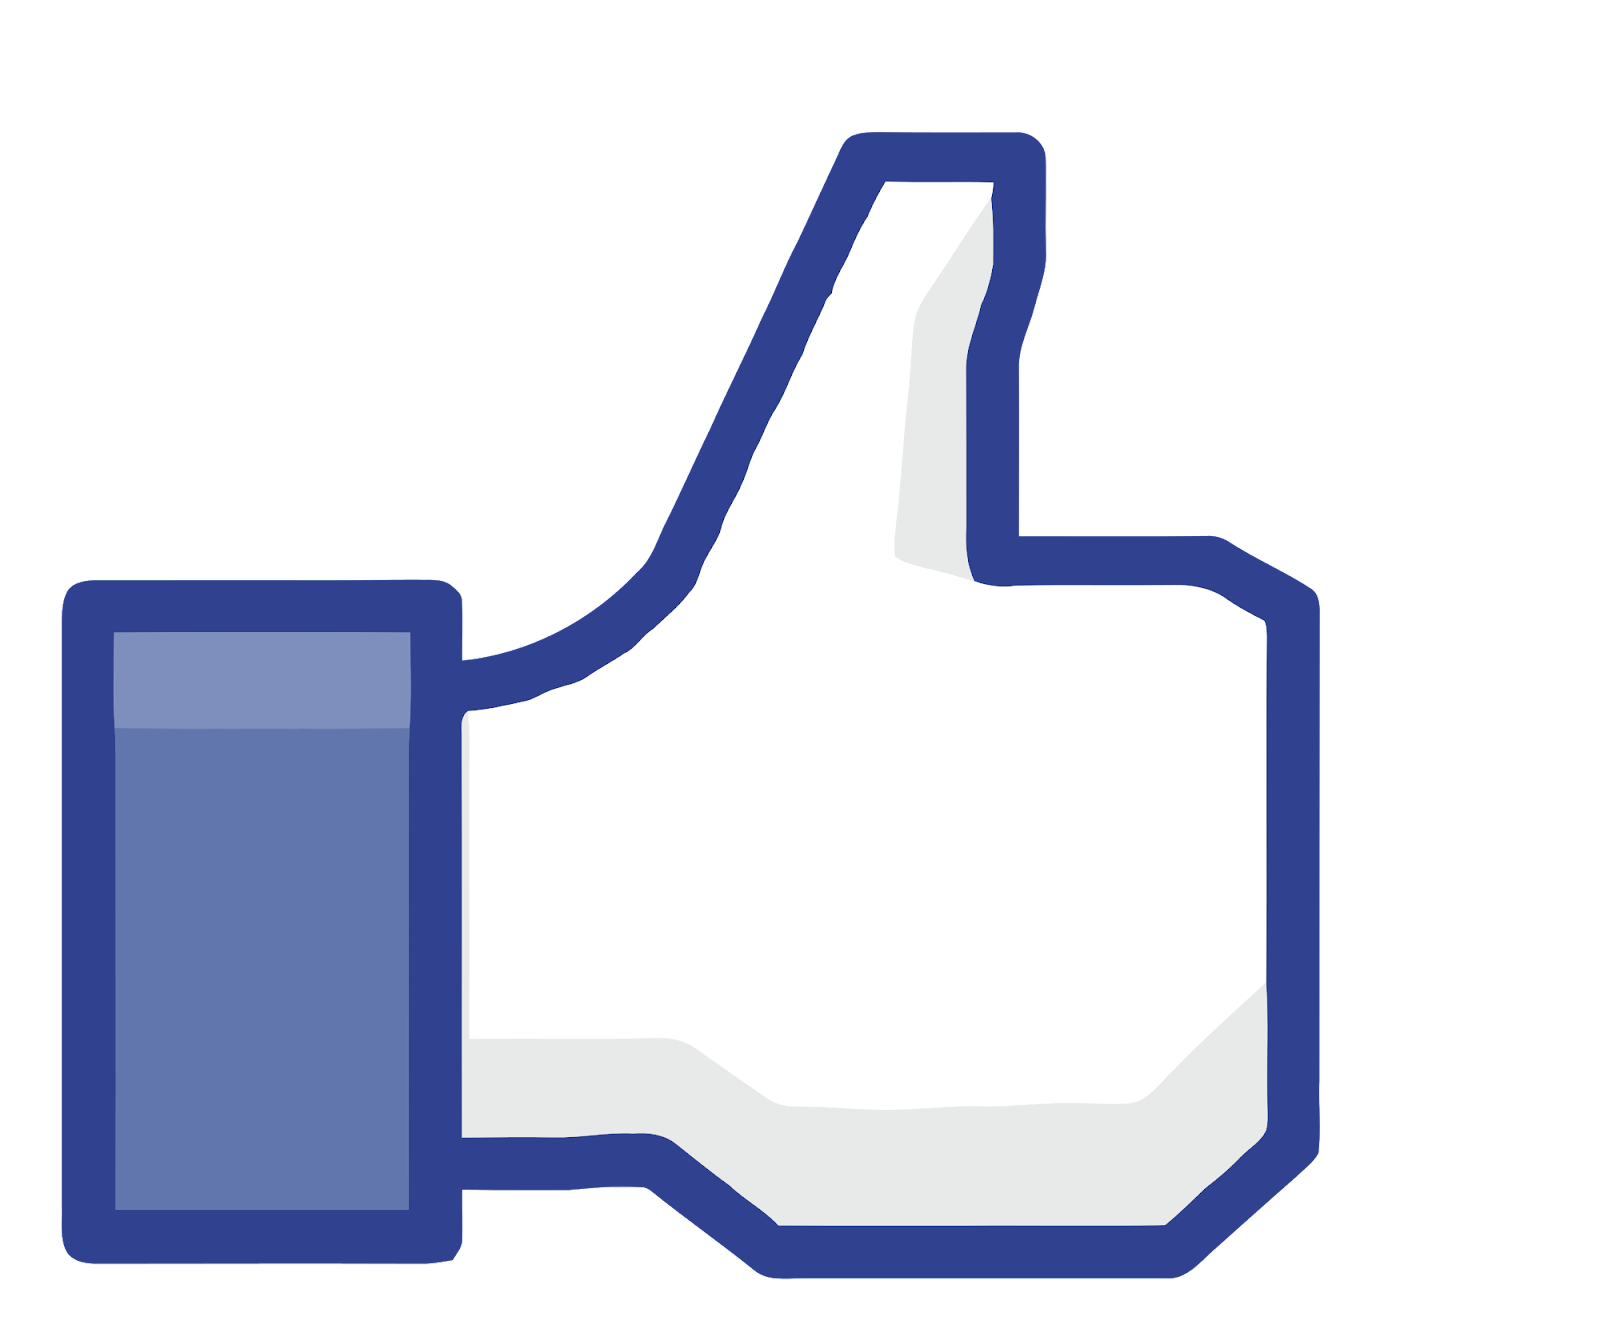 The like button on Facebook.